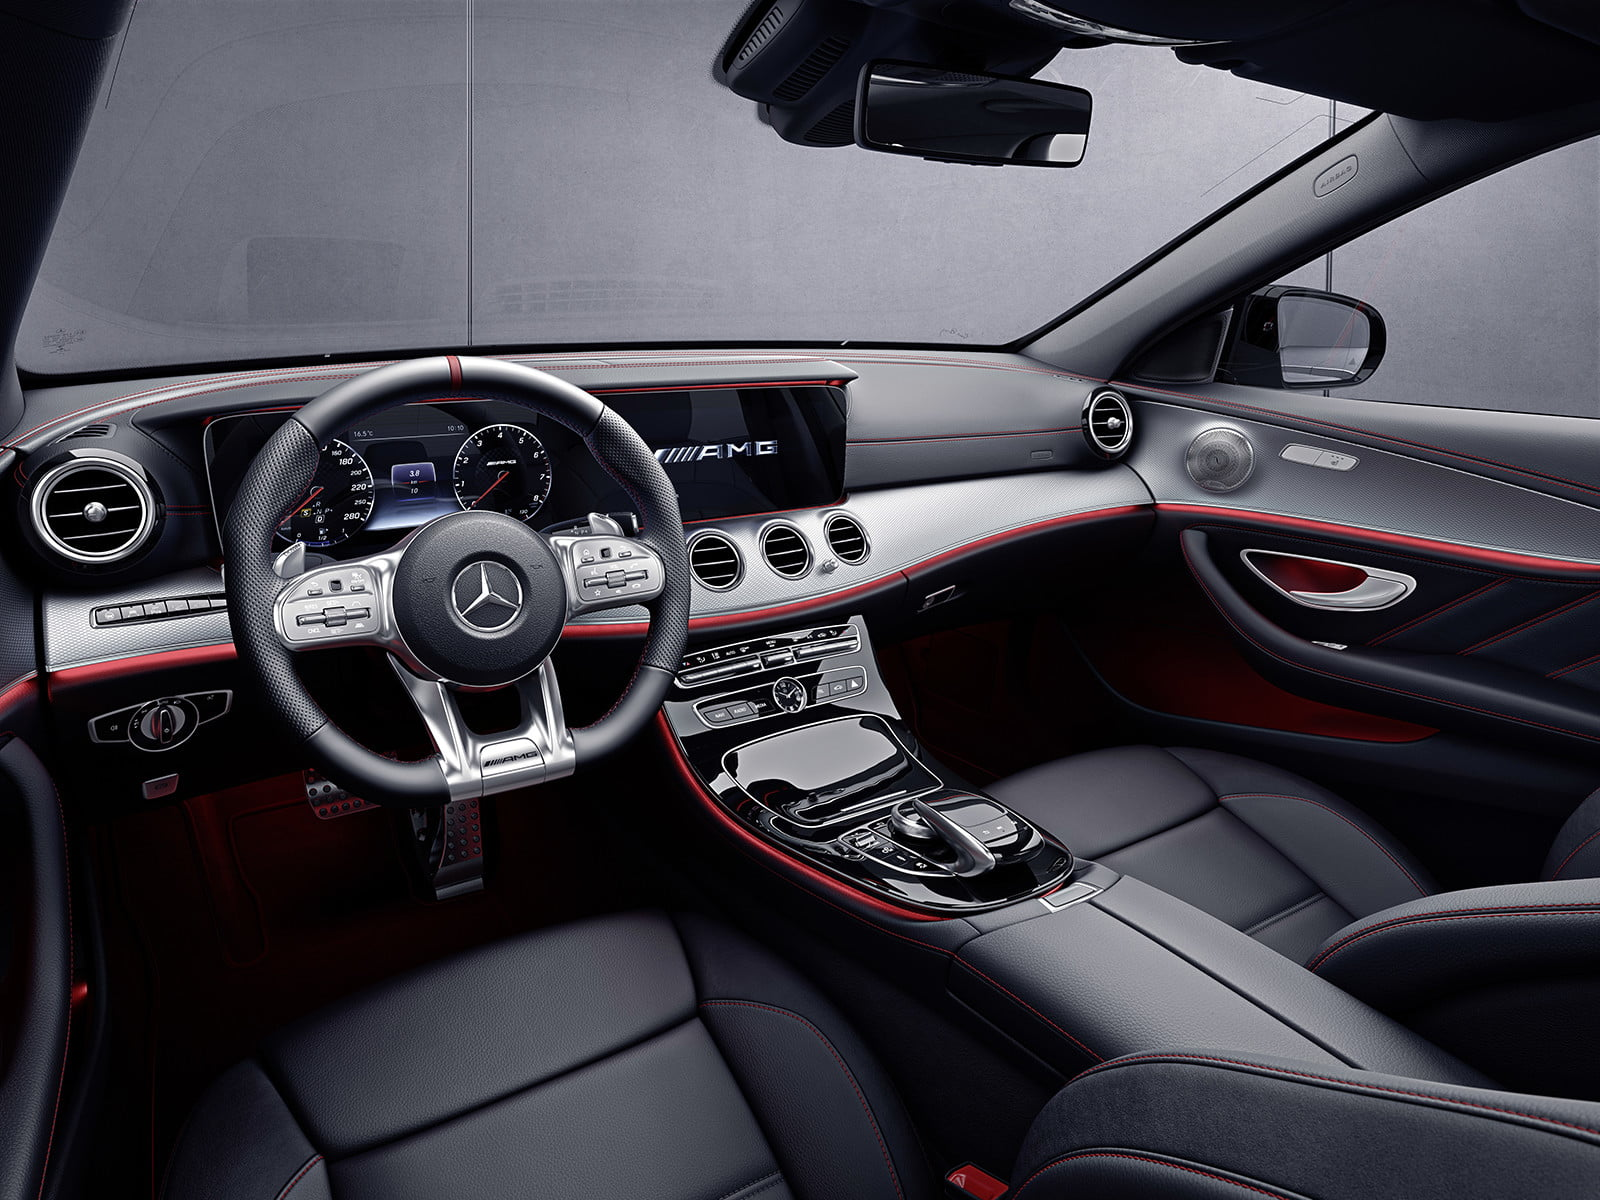 2019 Mercedes-AMG E 53 Lineup Gets New 48-Volt System and